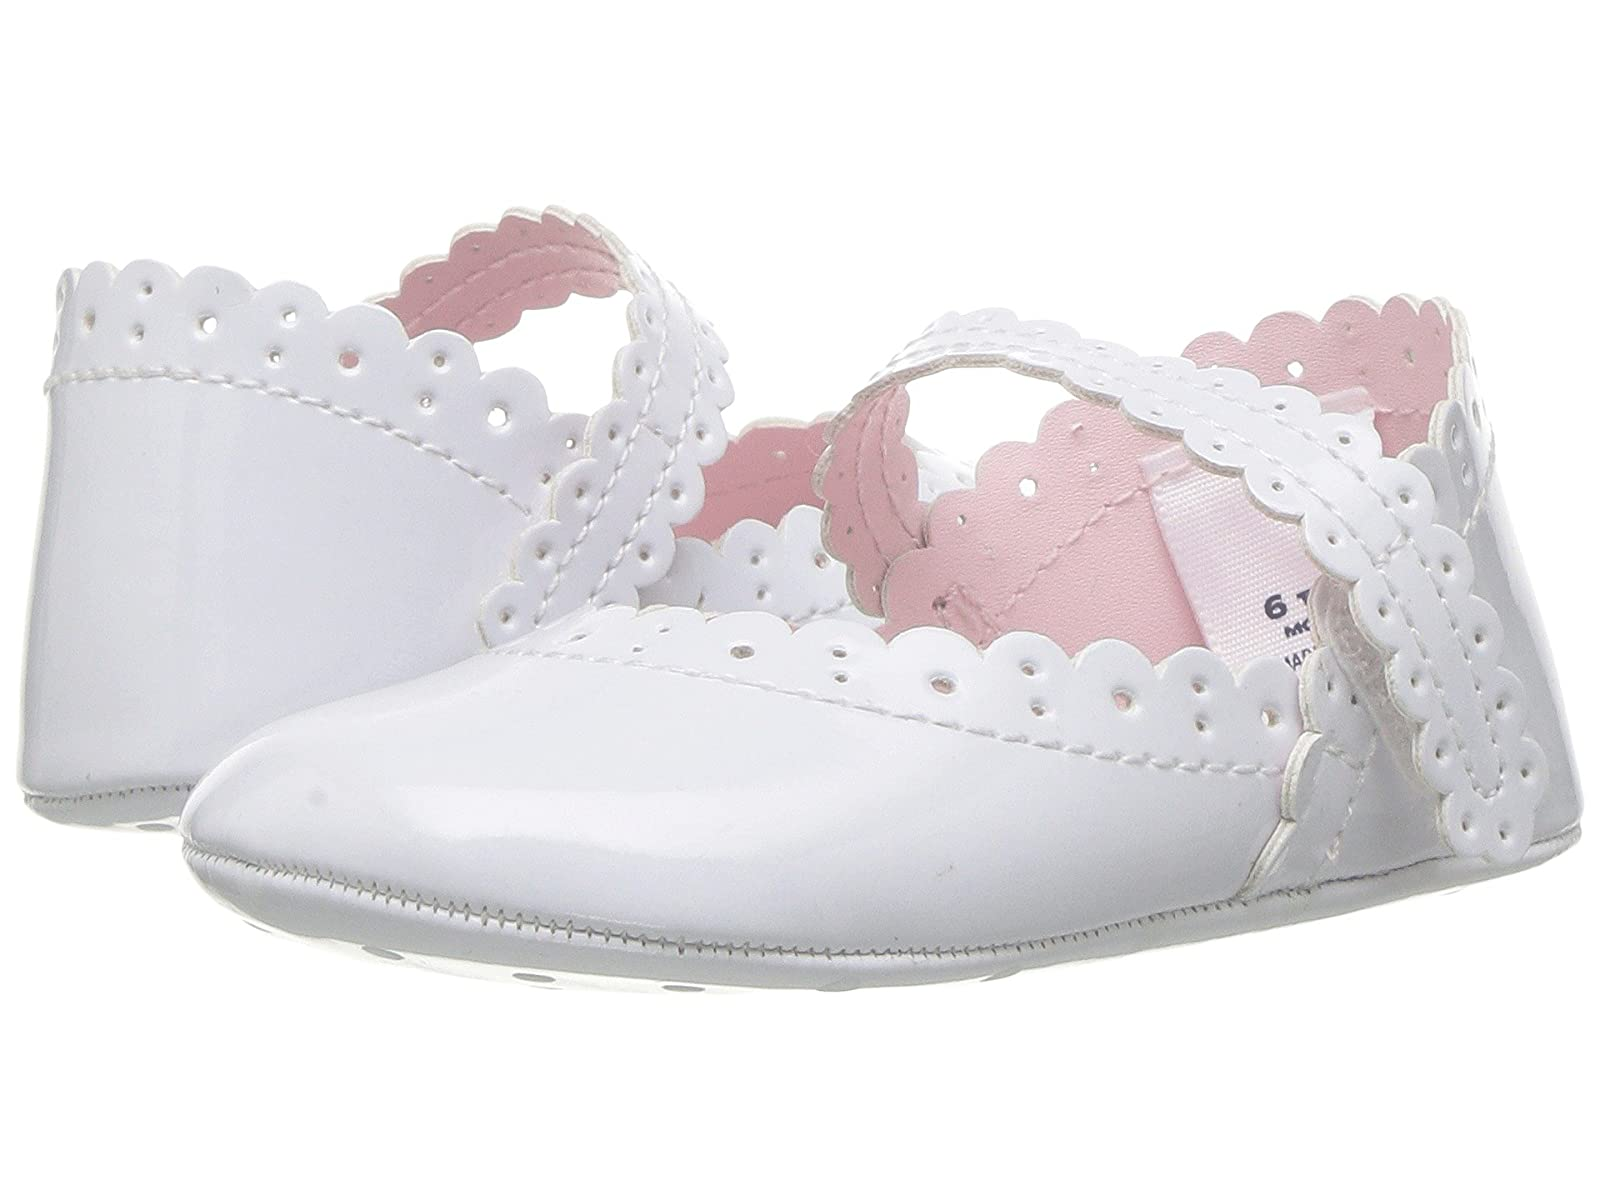 Janie and Jack Eyelet Crib Shoe (Infant)Atmospheric grades have affordable shoes